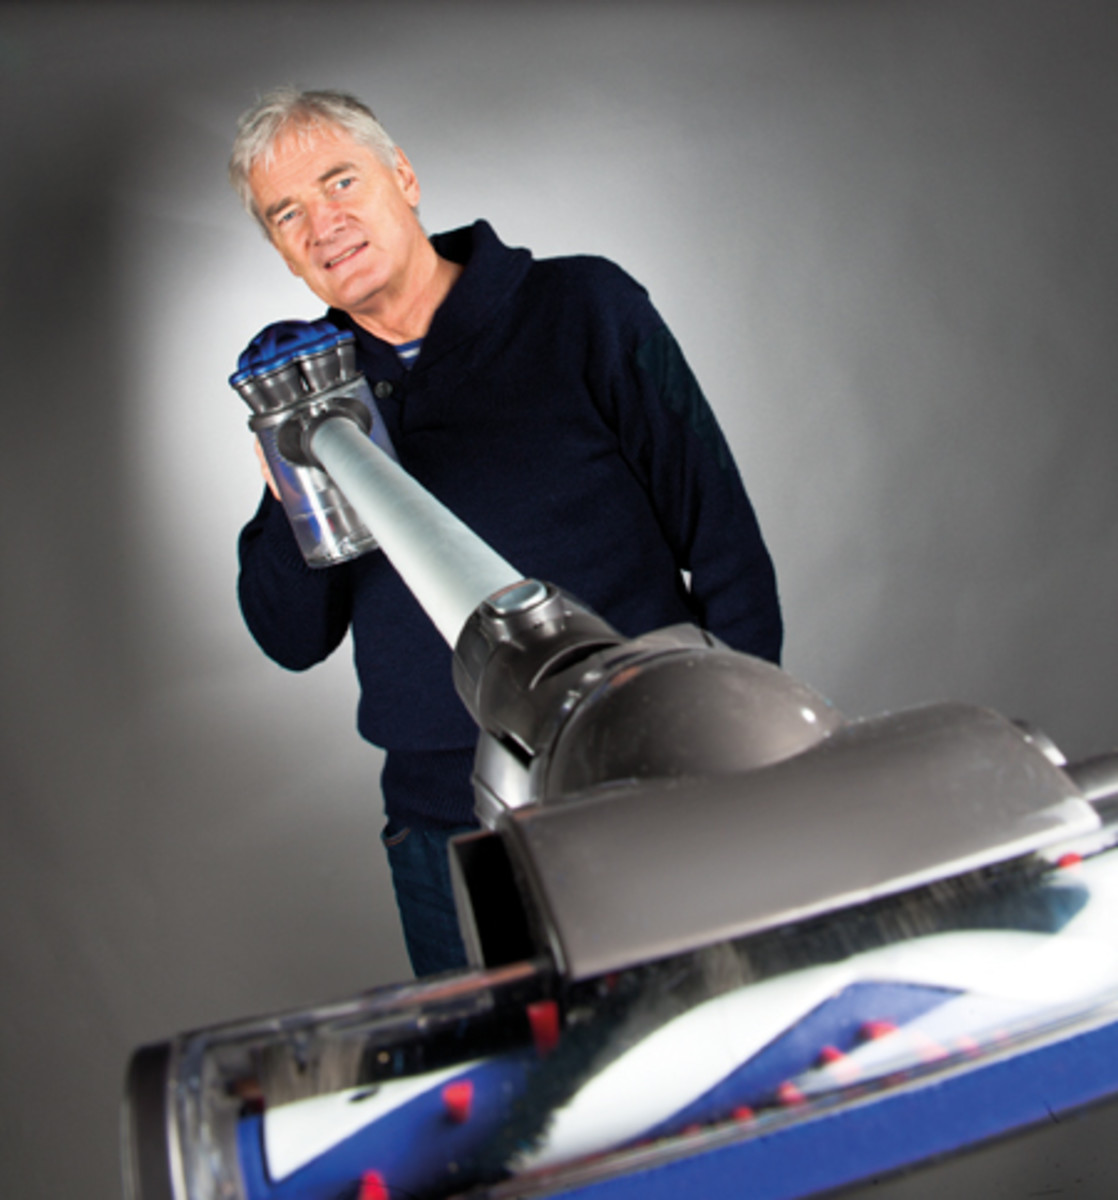 James Dyson, the Inventor, with the Amazing Dyson DC35 Digital Slim